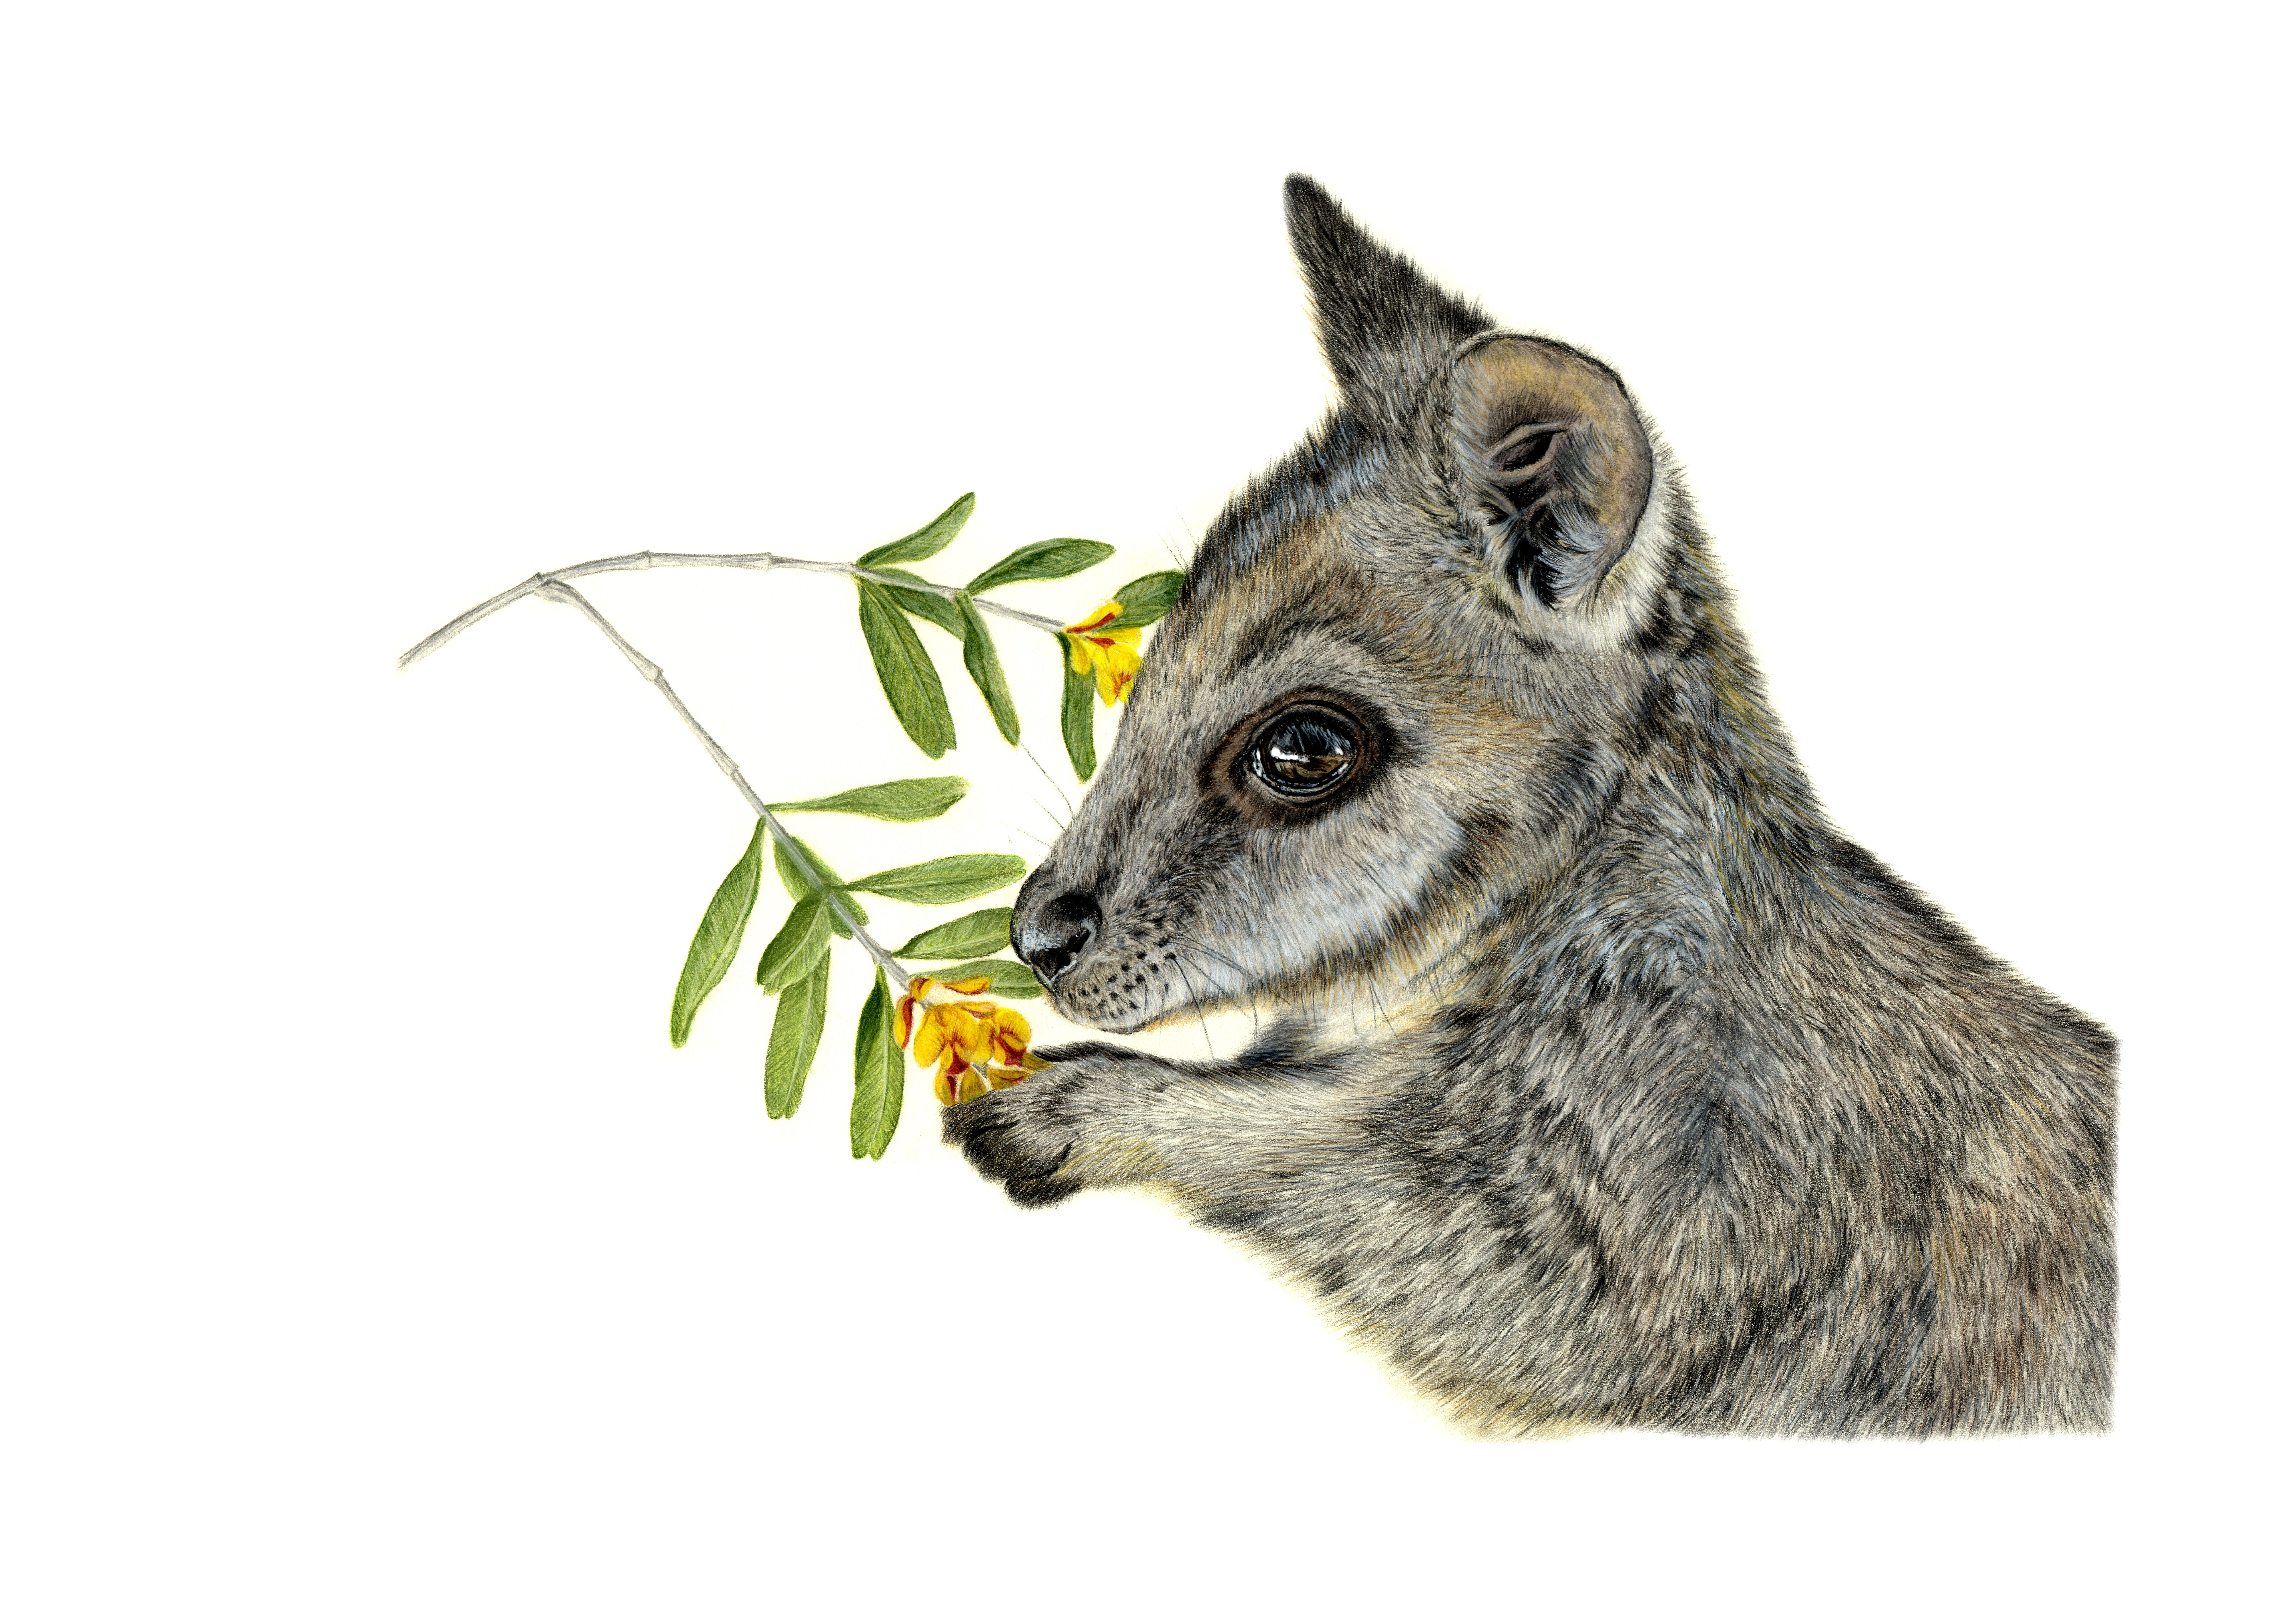 #wallaby #wildlifeart #wildlifedrawing #wildlifeartist #apartmenttherapy #finditstyleit #natureinside #myhomevibe #natureinspired #affordableart #natureinthehome #earthinspiredhome #supporthandmade #australianmade #australianartist #australianart #madeinwa #fineart #makersgonnamake #calledtobecreative #inspiredbynature